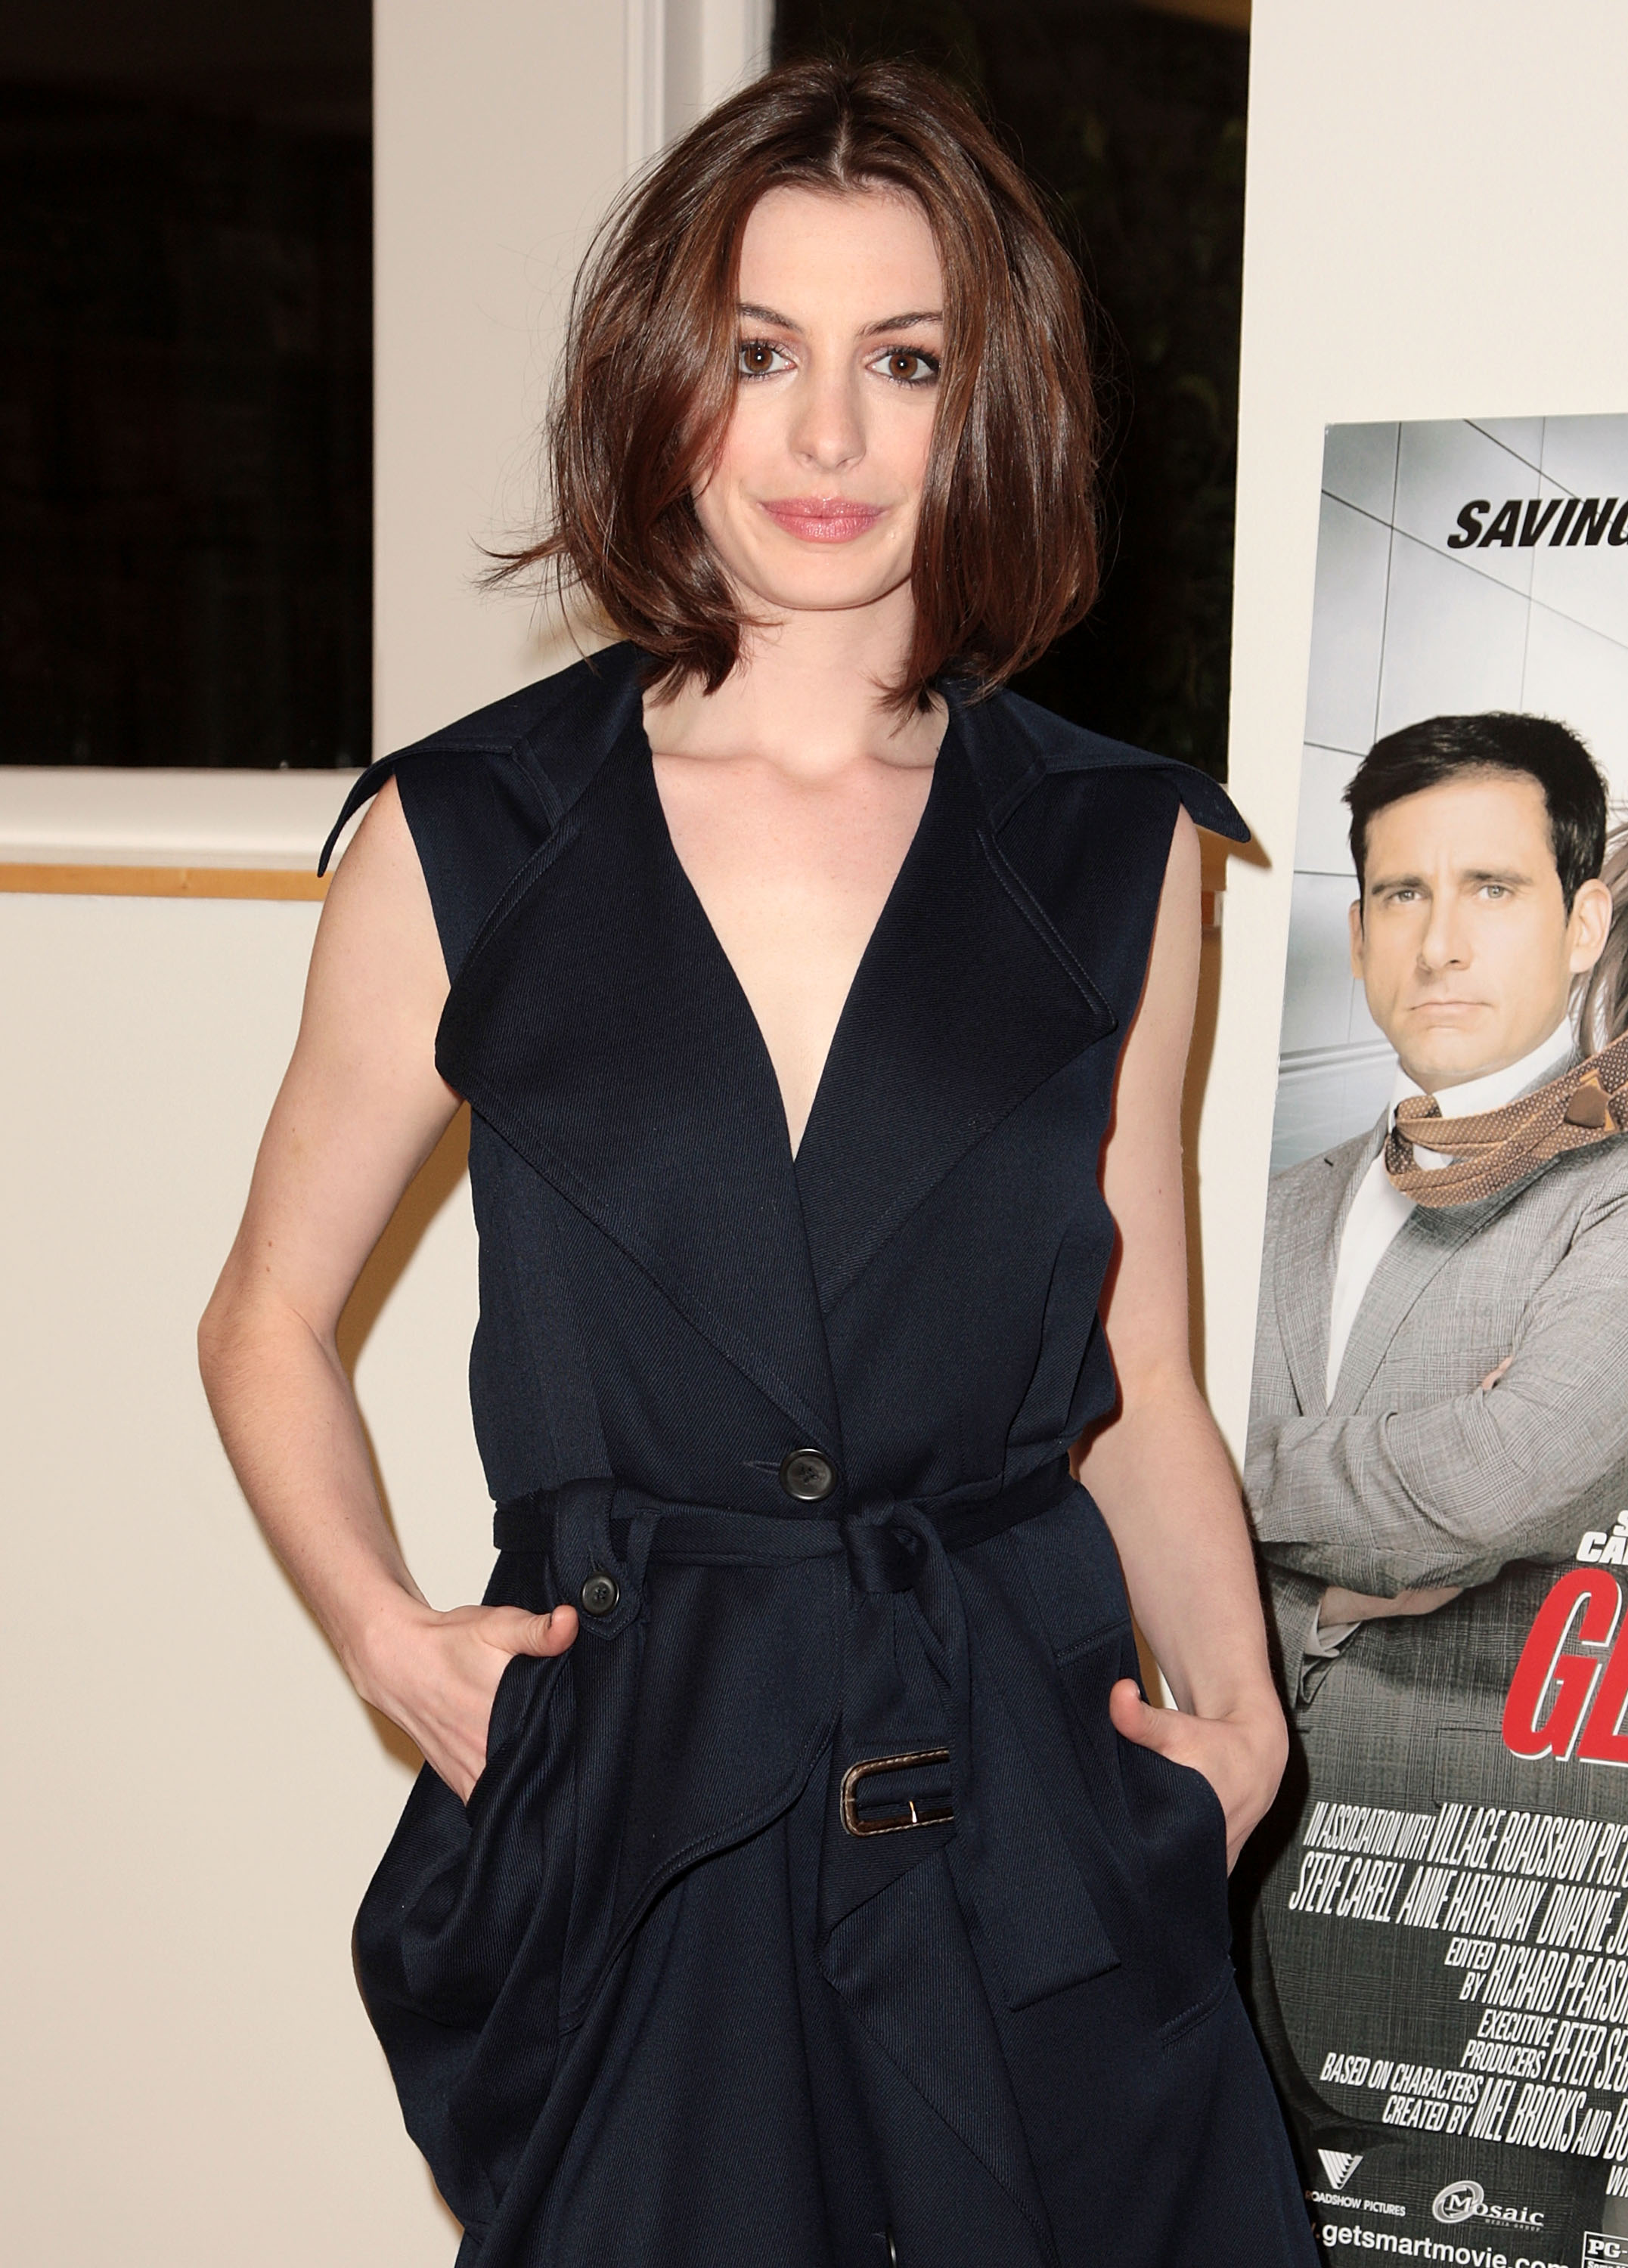 59026_anne_hathaway_meet_the_actors_apple_store-NY_june182008_02_122_240lo.jpg